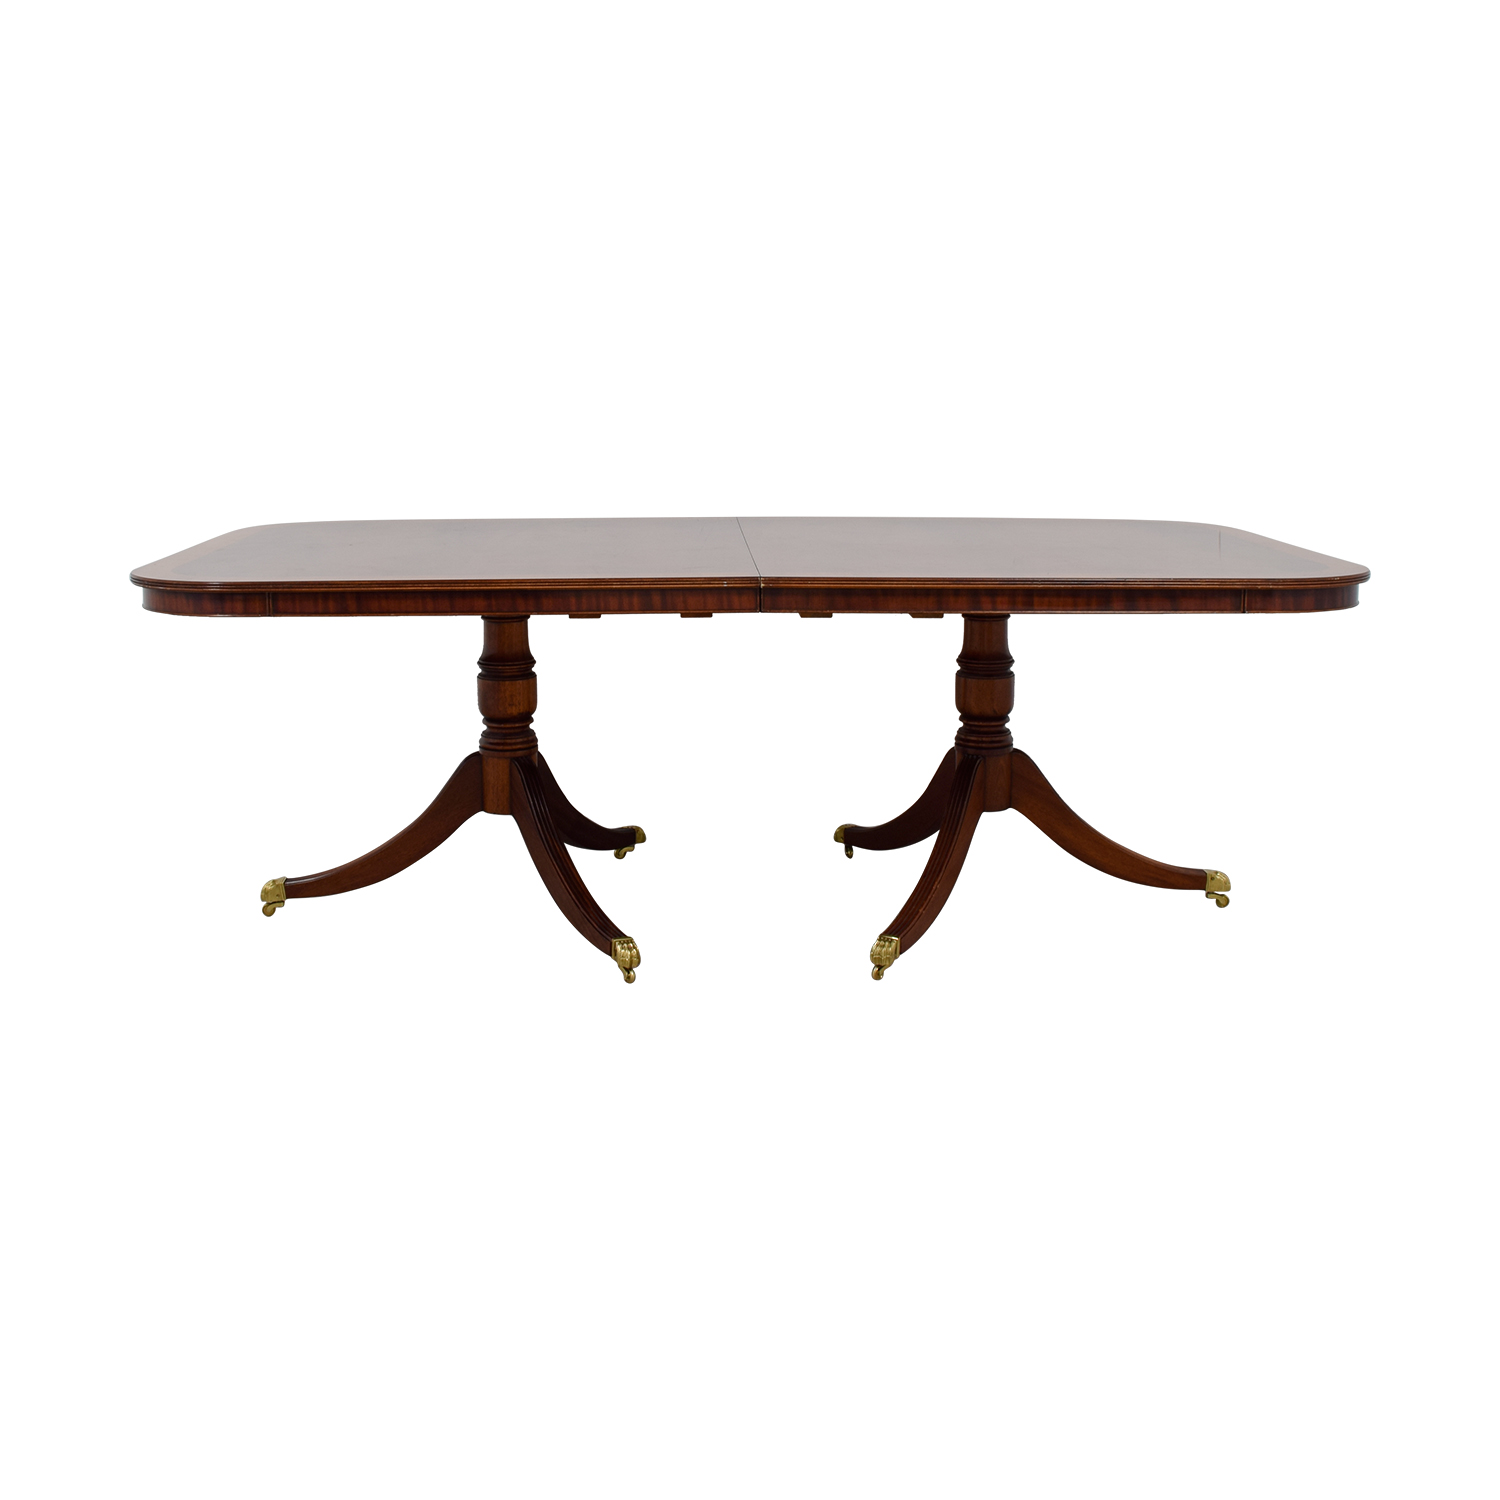 Polished Wood Dining Table with Gold Feet second hand